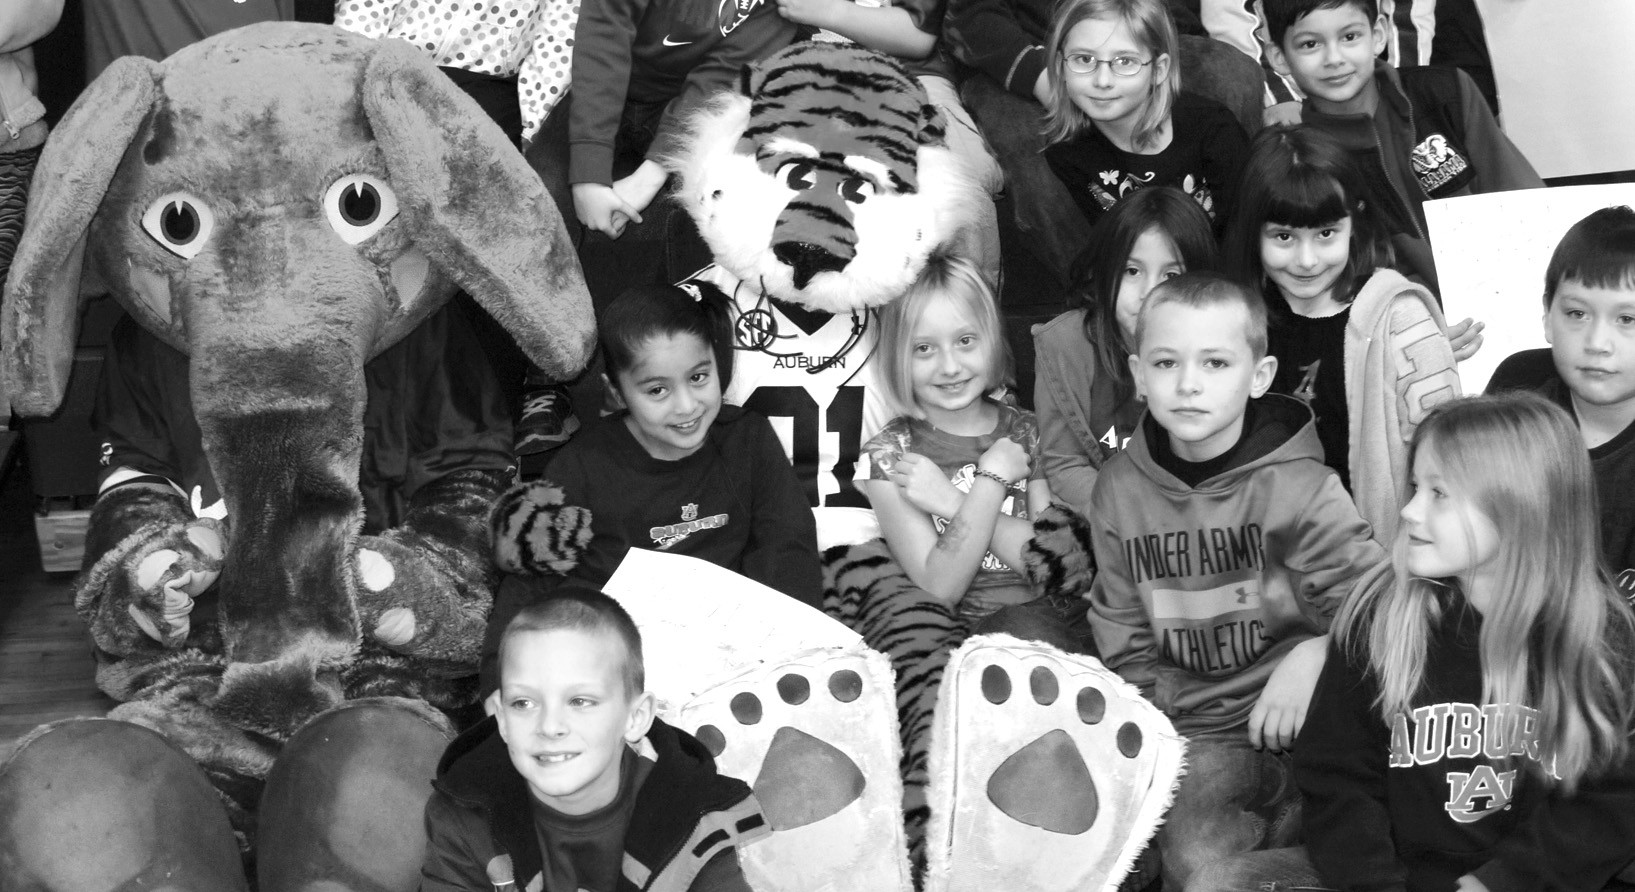 Last week, Blount County students celebrated Reading and Writing Week, and Susan Moore Elementary students began the week with a special visit from Big Al and Aubie. The two college mascots came to the school for a reading and writing pep rally. Carol Pullen, instructional coach at Susan Moore Elementary, said she was thrilled when both mascots agreed to attend the festivities. 'We didn't even know it was an option, but Jodie Jacobs, Blount County school improvement specialist, recommended it, and when we e-mailed and asked both of them said yes.' The theme of the week was Reading and Writing Champs, which fit perfectly with inviting the mascots to the school. 'Reading and Writing Week is meant to promote reading and writing in the classroom and get students motivated to do that on their own time when not being forced,' Pullen said. 'We want to instill a lifelong love for reading and writing.' – Nicole Singleton